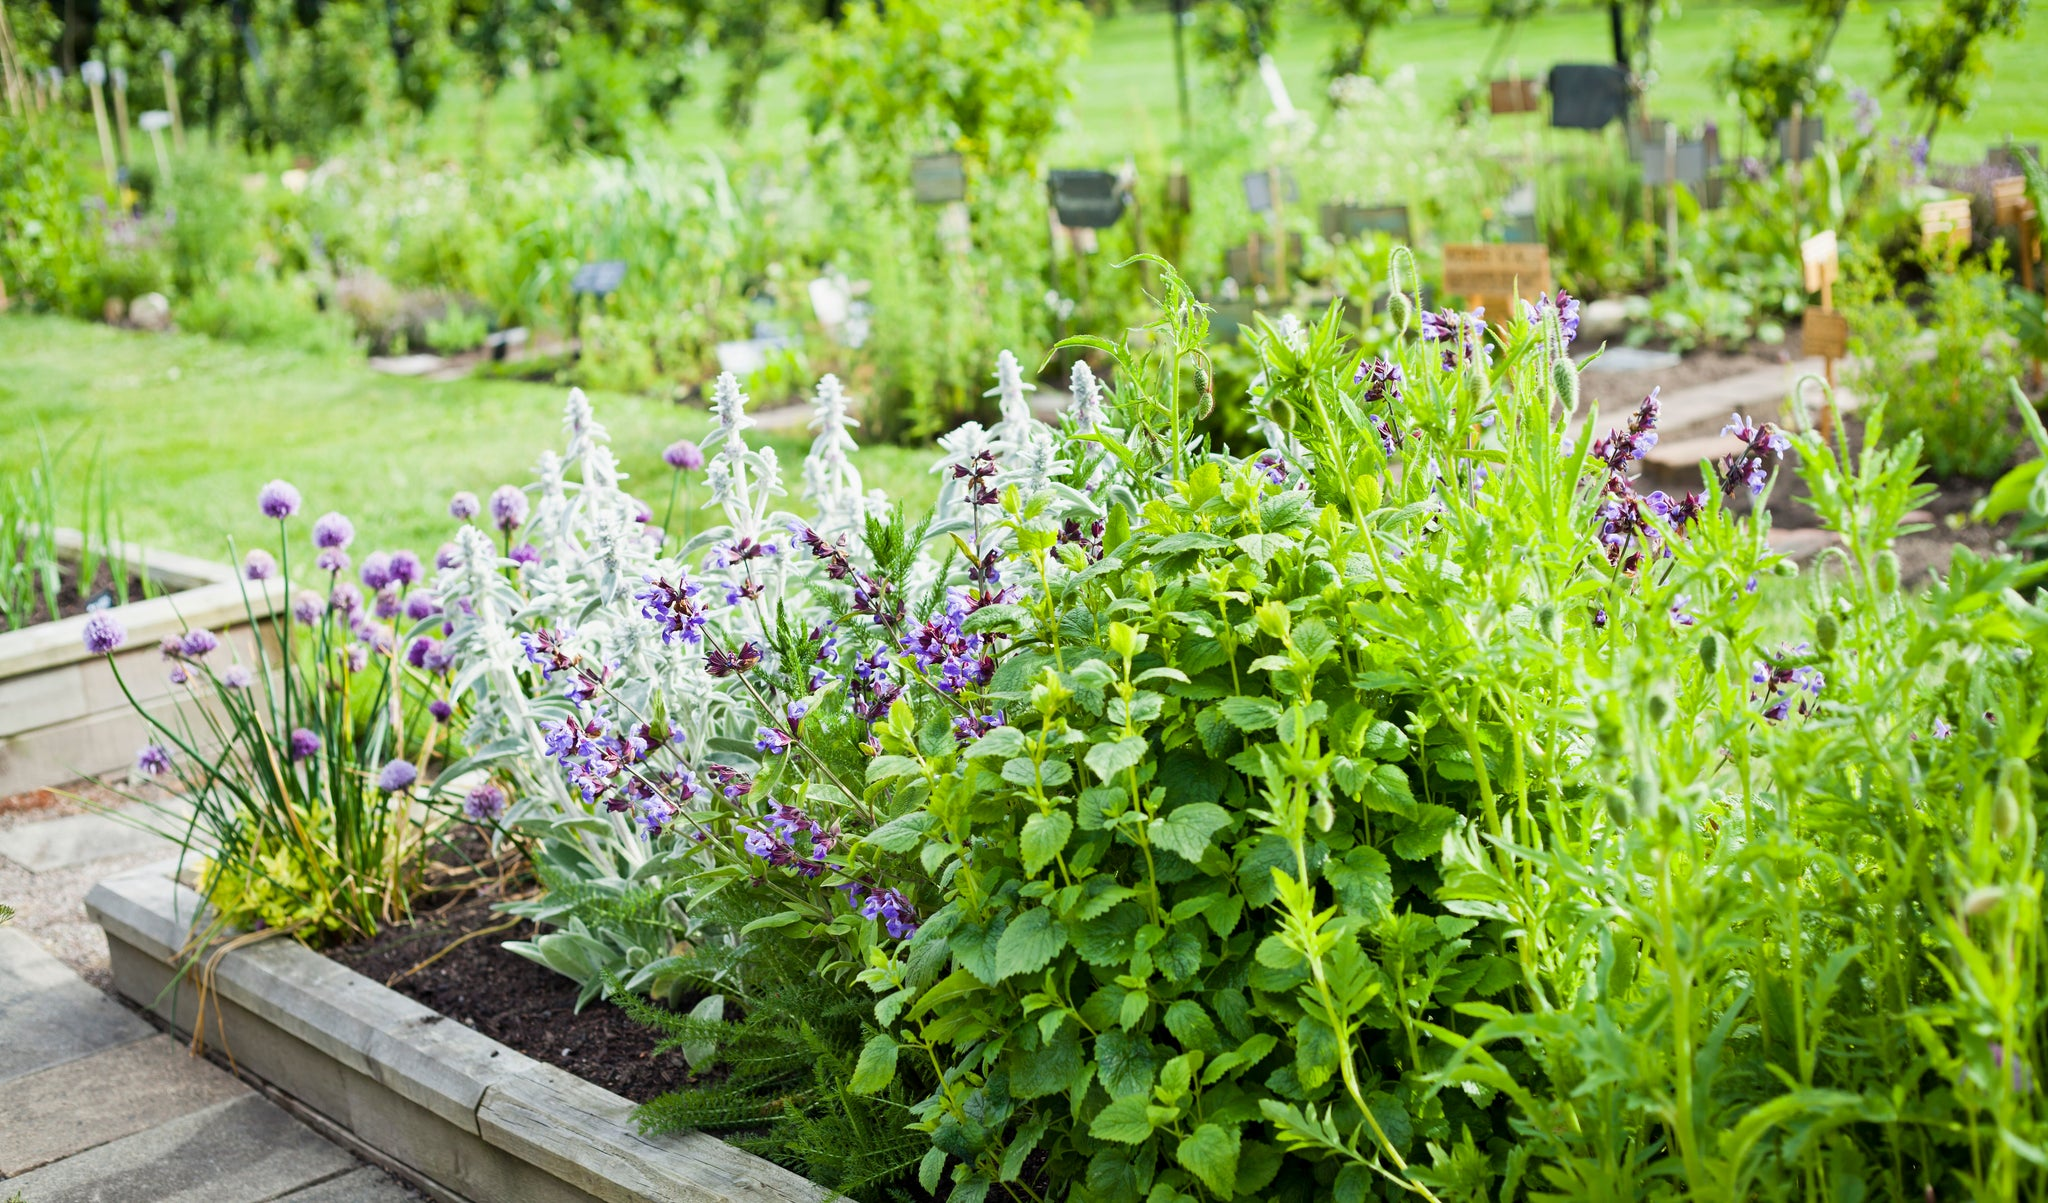 Healthy Lifestyle: Cultivate Healing Herbs in Your Garden